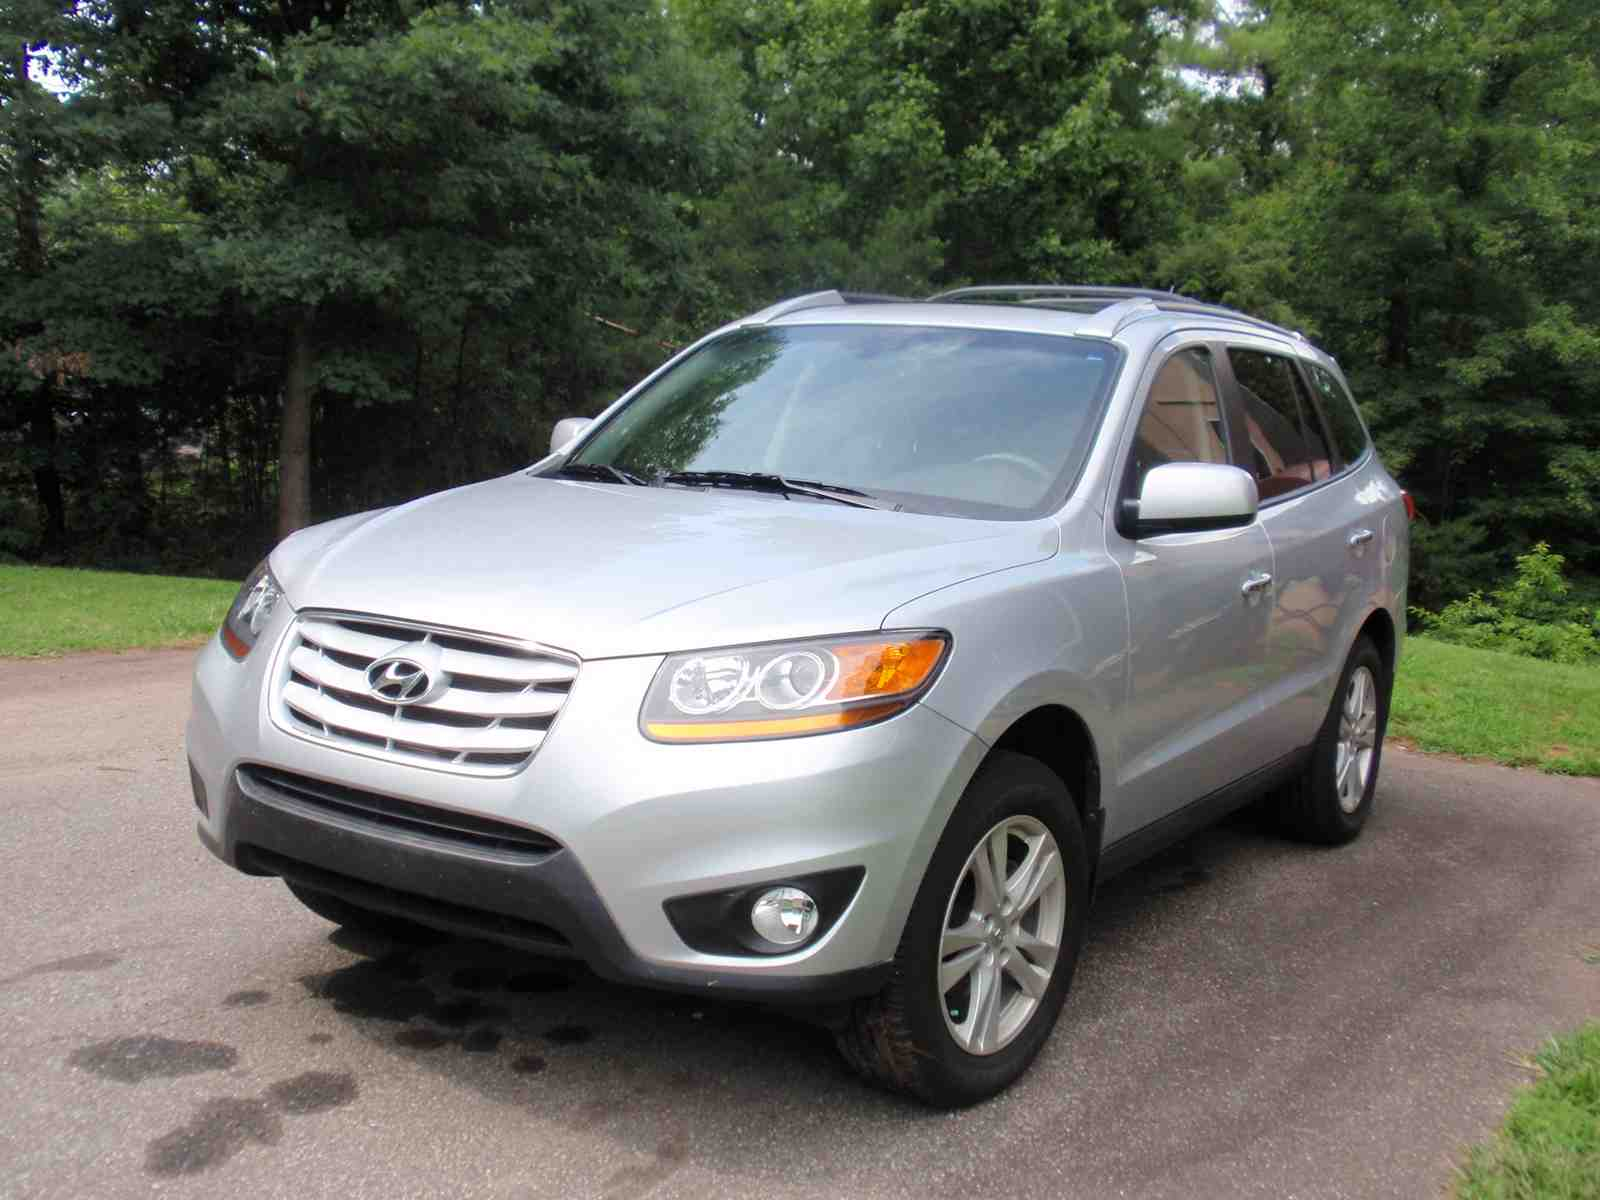 2009 2010 hyundai santa fe workshop repair service manual 1 405 rh pagelarge com 2009 hyundai santa fe manual transmission hyundai santa fe 2009 manuel pdf